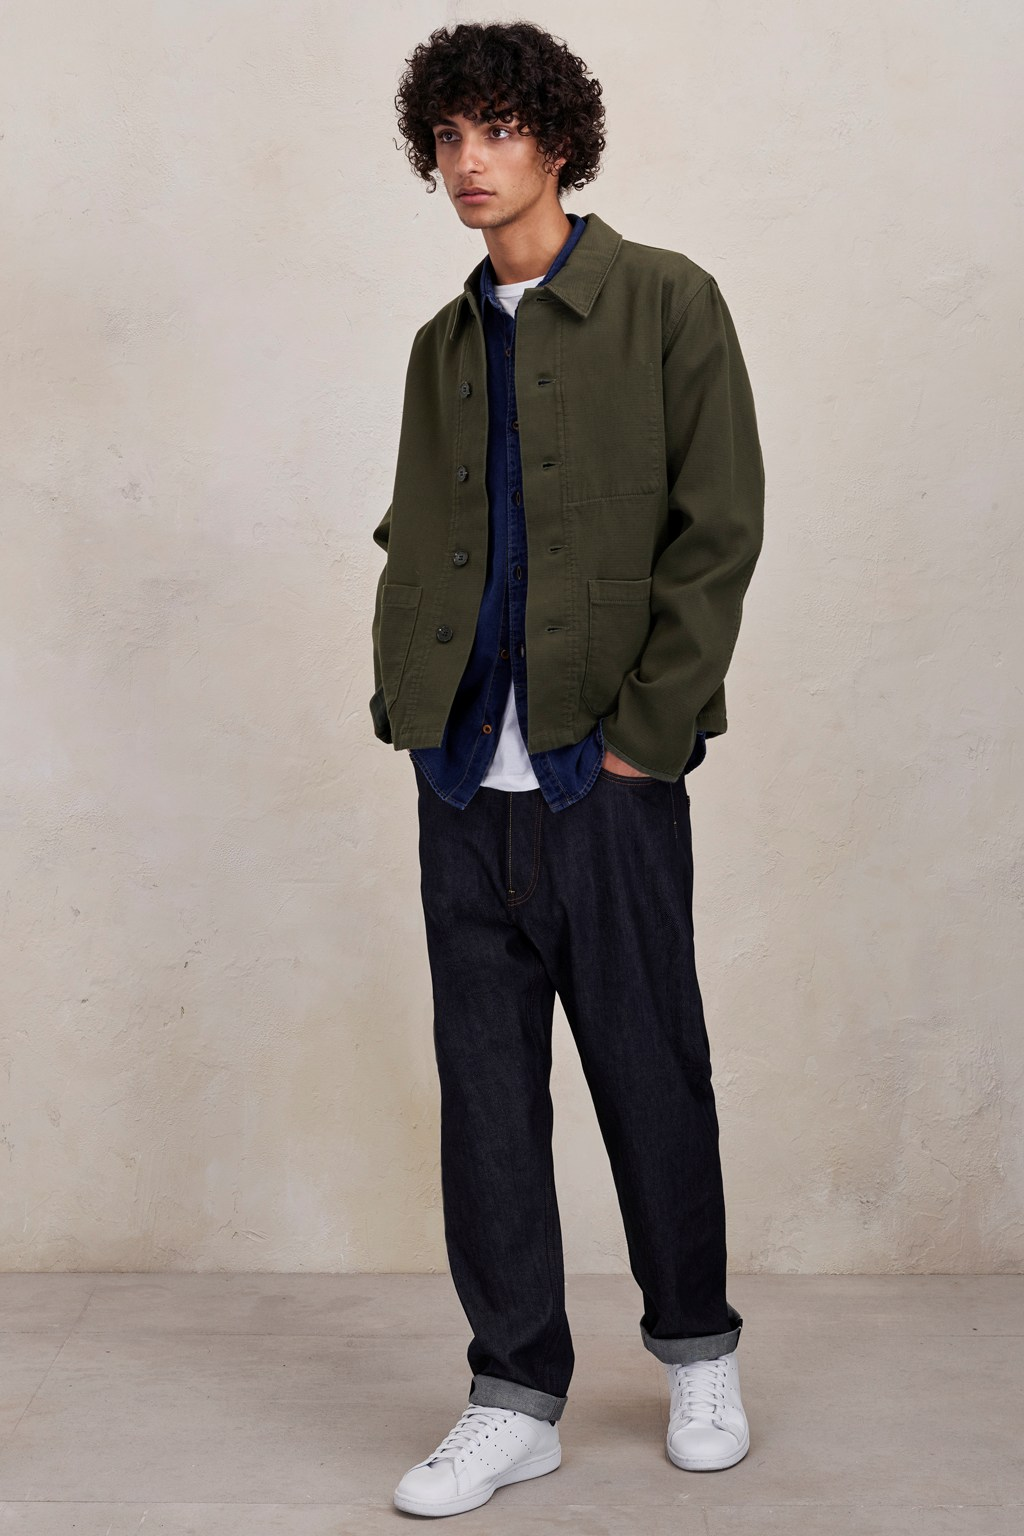 Men's Fashion - Slouchy Shapes